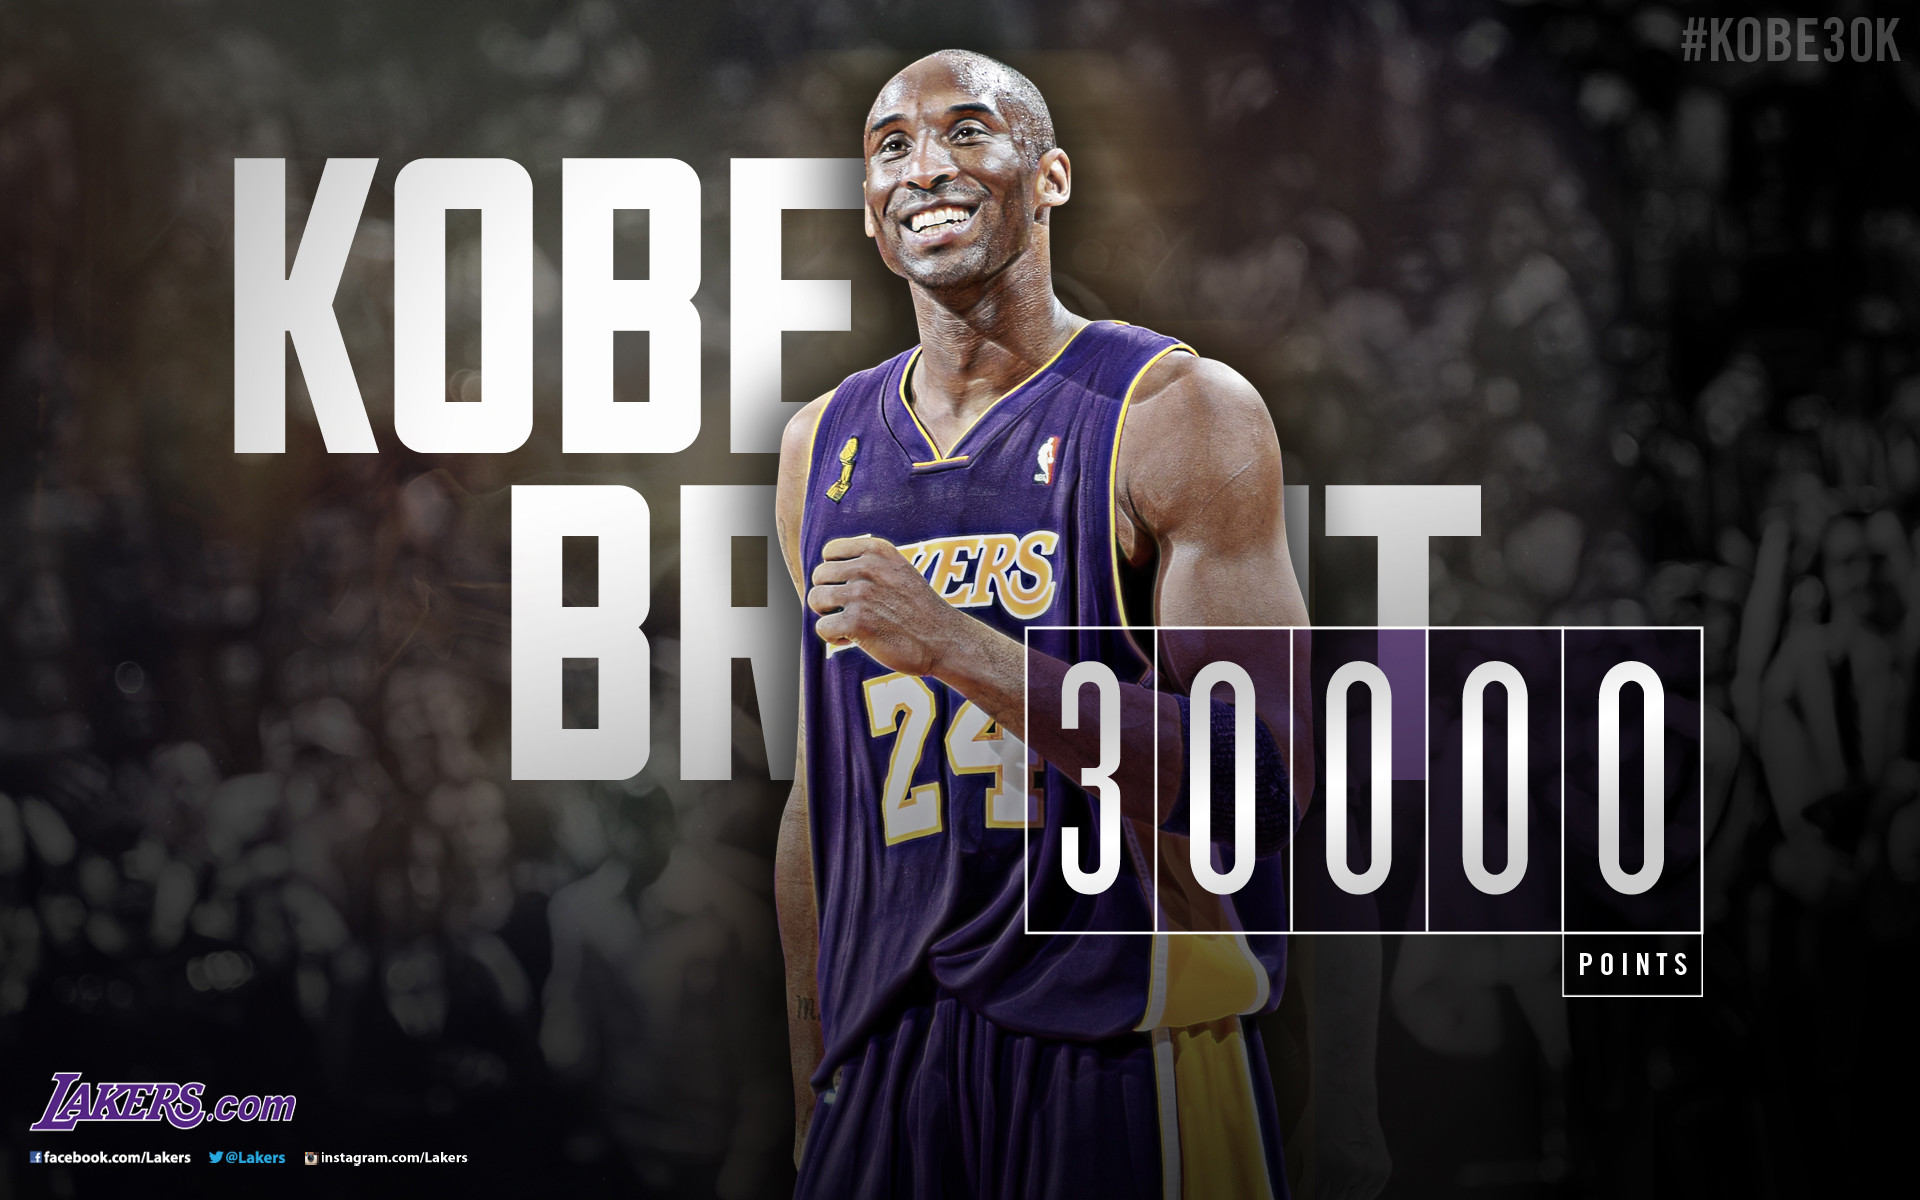 Kobe Bryant Wallpaper 2018 1